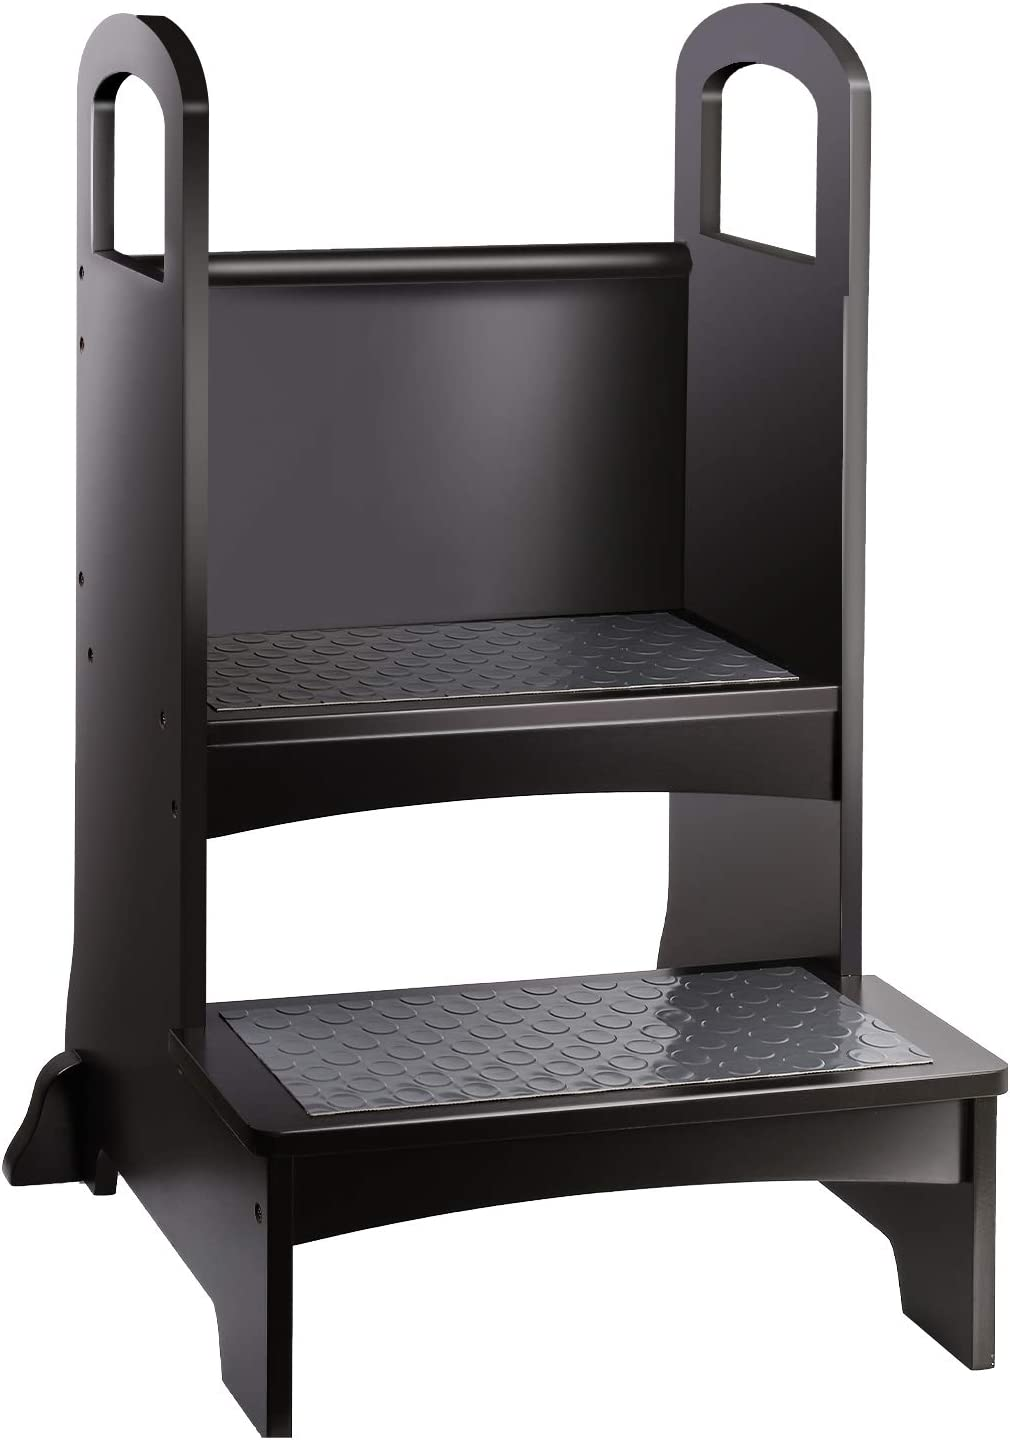 YOUNIS Kids Kitchen Step Stool, Toddler Kitchen Learning Stool, Height Standing Tower Stool for Children with 2 Non-Slip Mats, Safety Stool in Home Kitchen Bedroom - Espresso Deep Brown Black